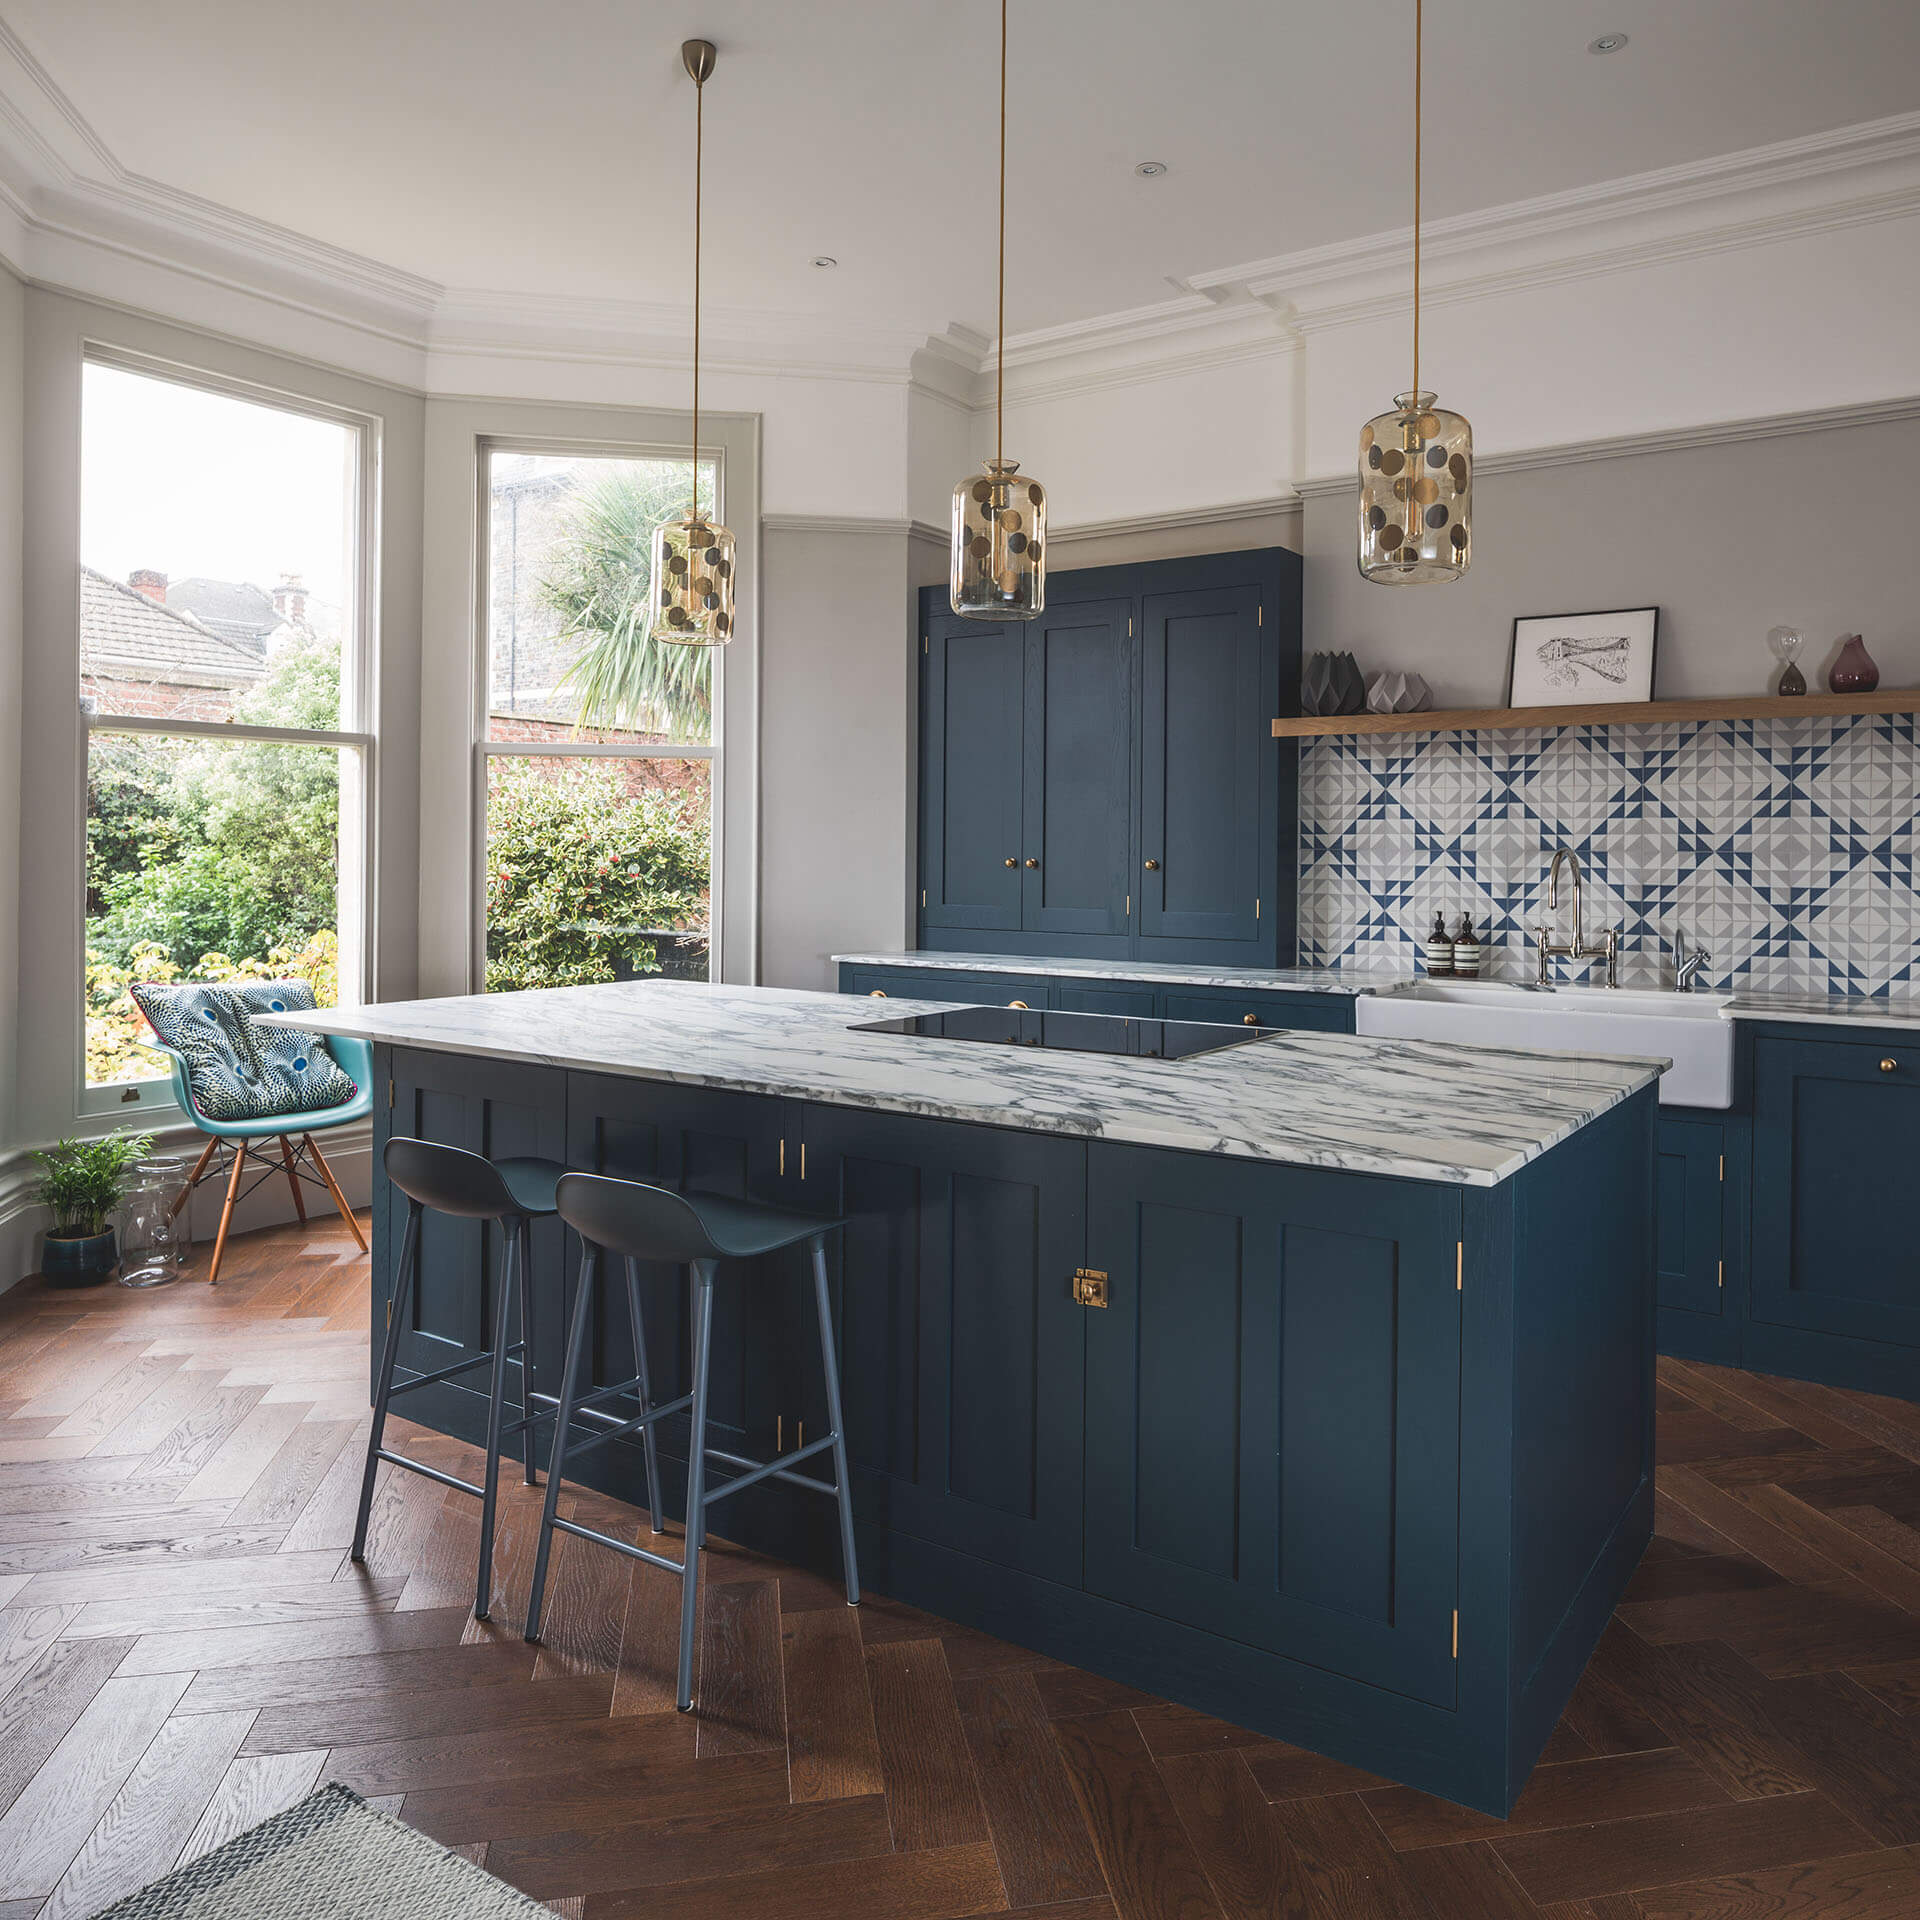 Astounding Dark Blue Geometric Kitchen Sustainable Kitchens Home Interior And Landscaping Ologienasavecom